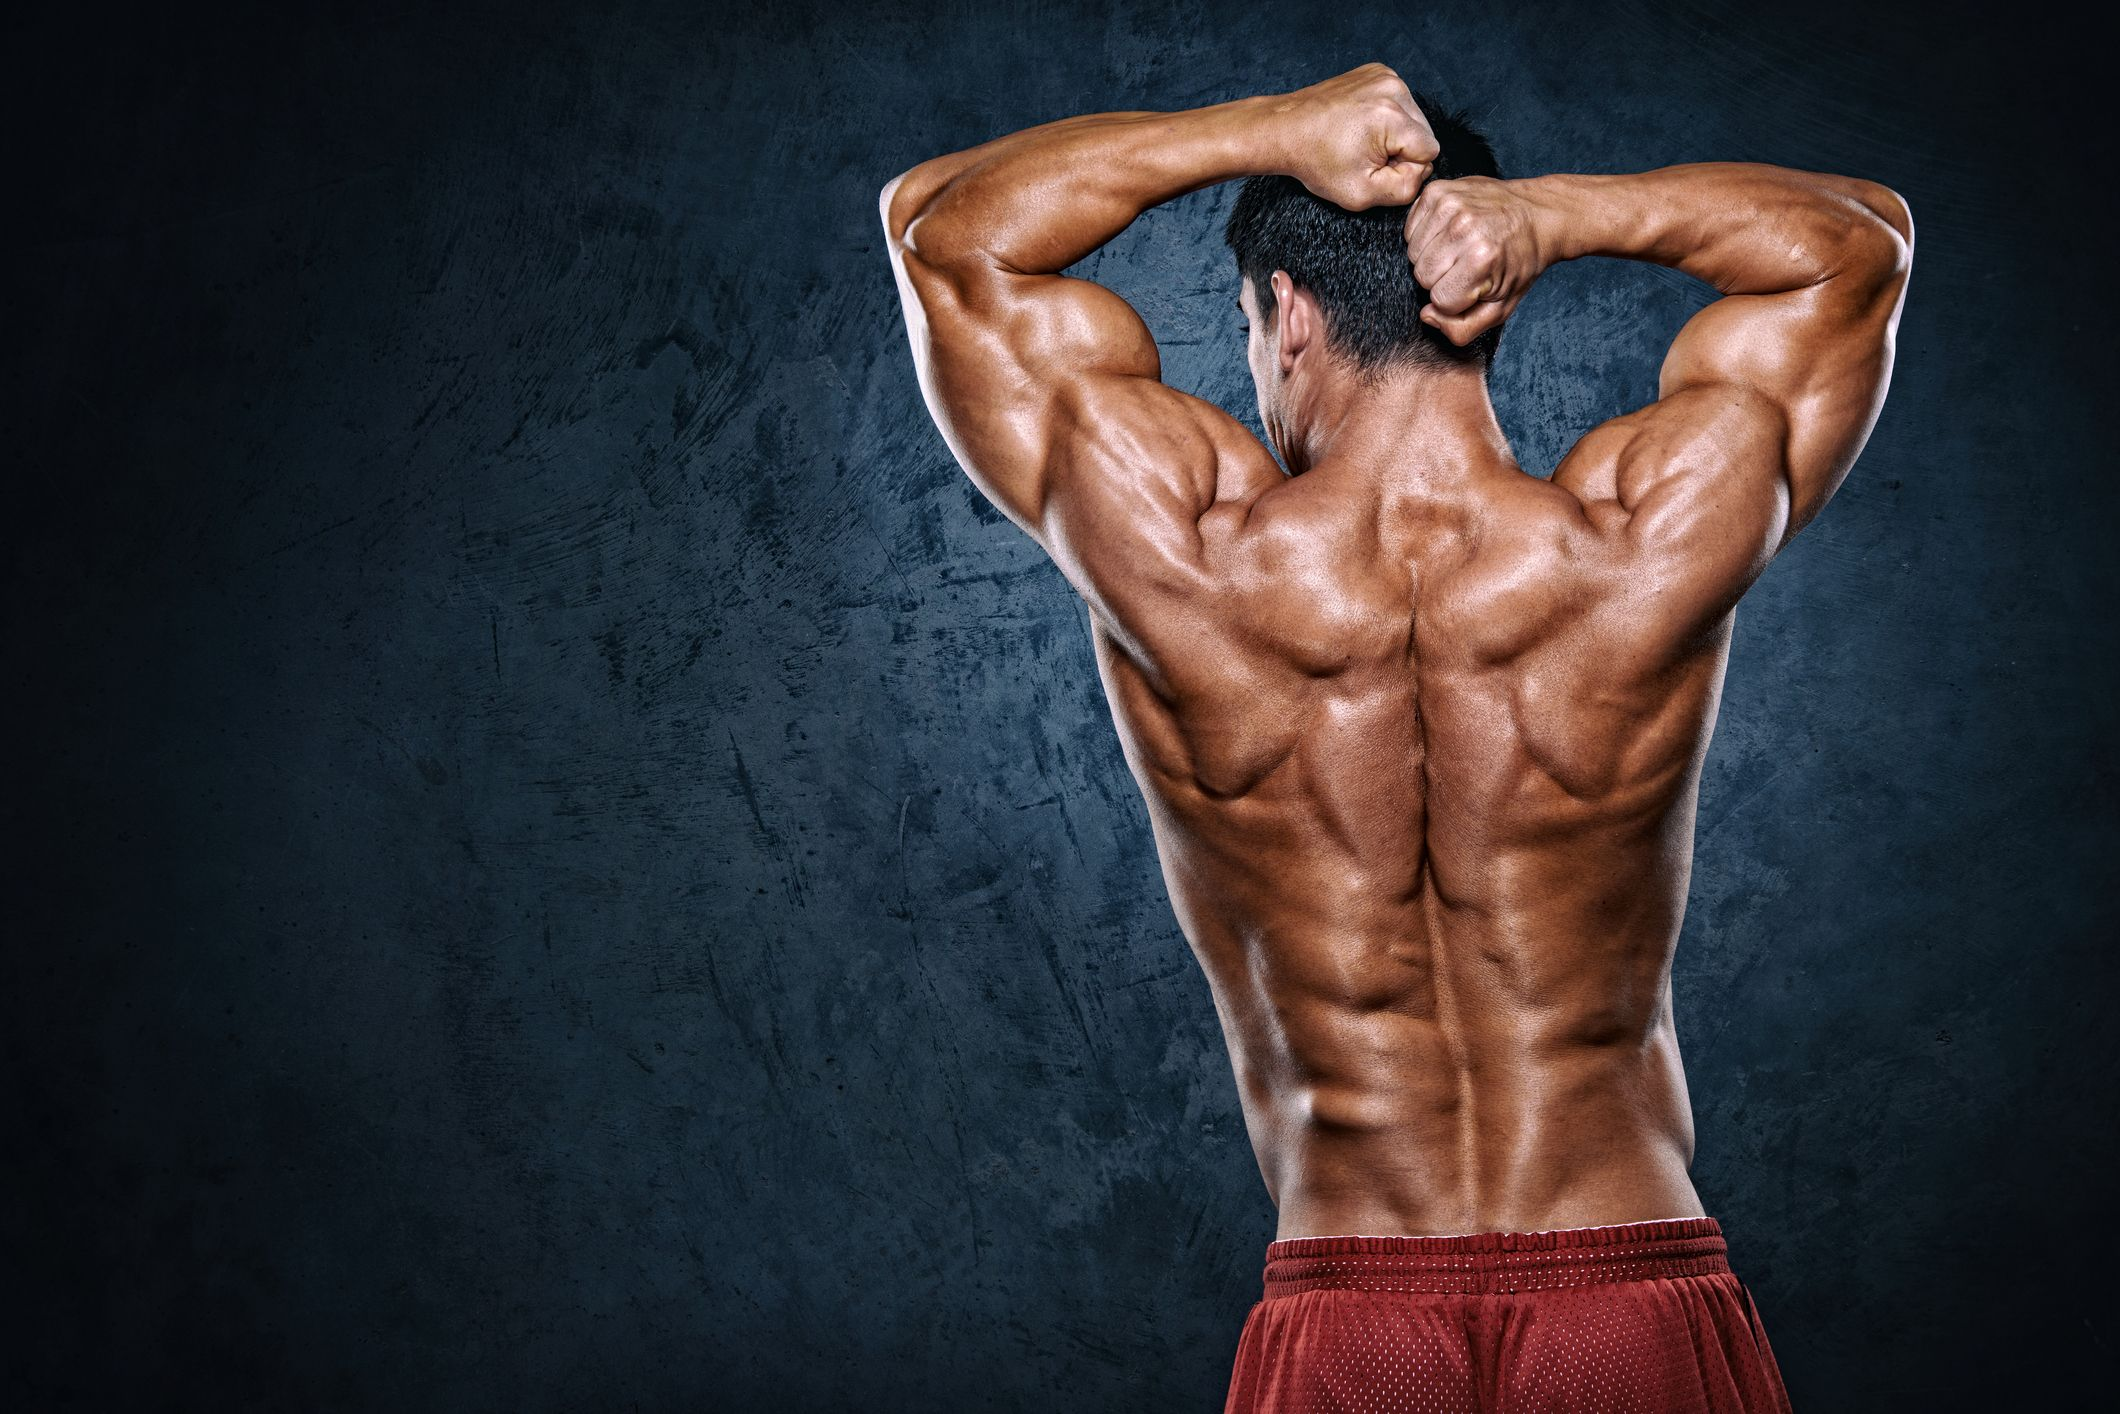 How to build back muscle at home without weights